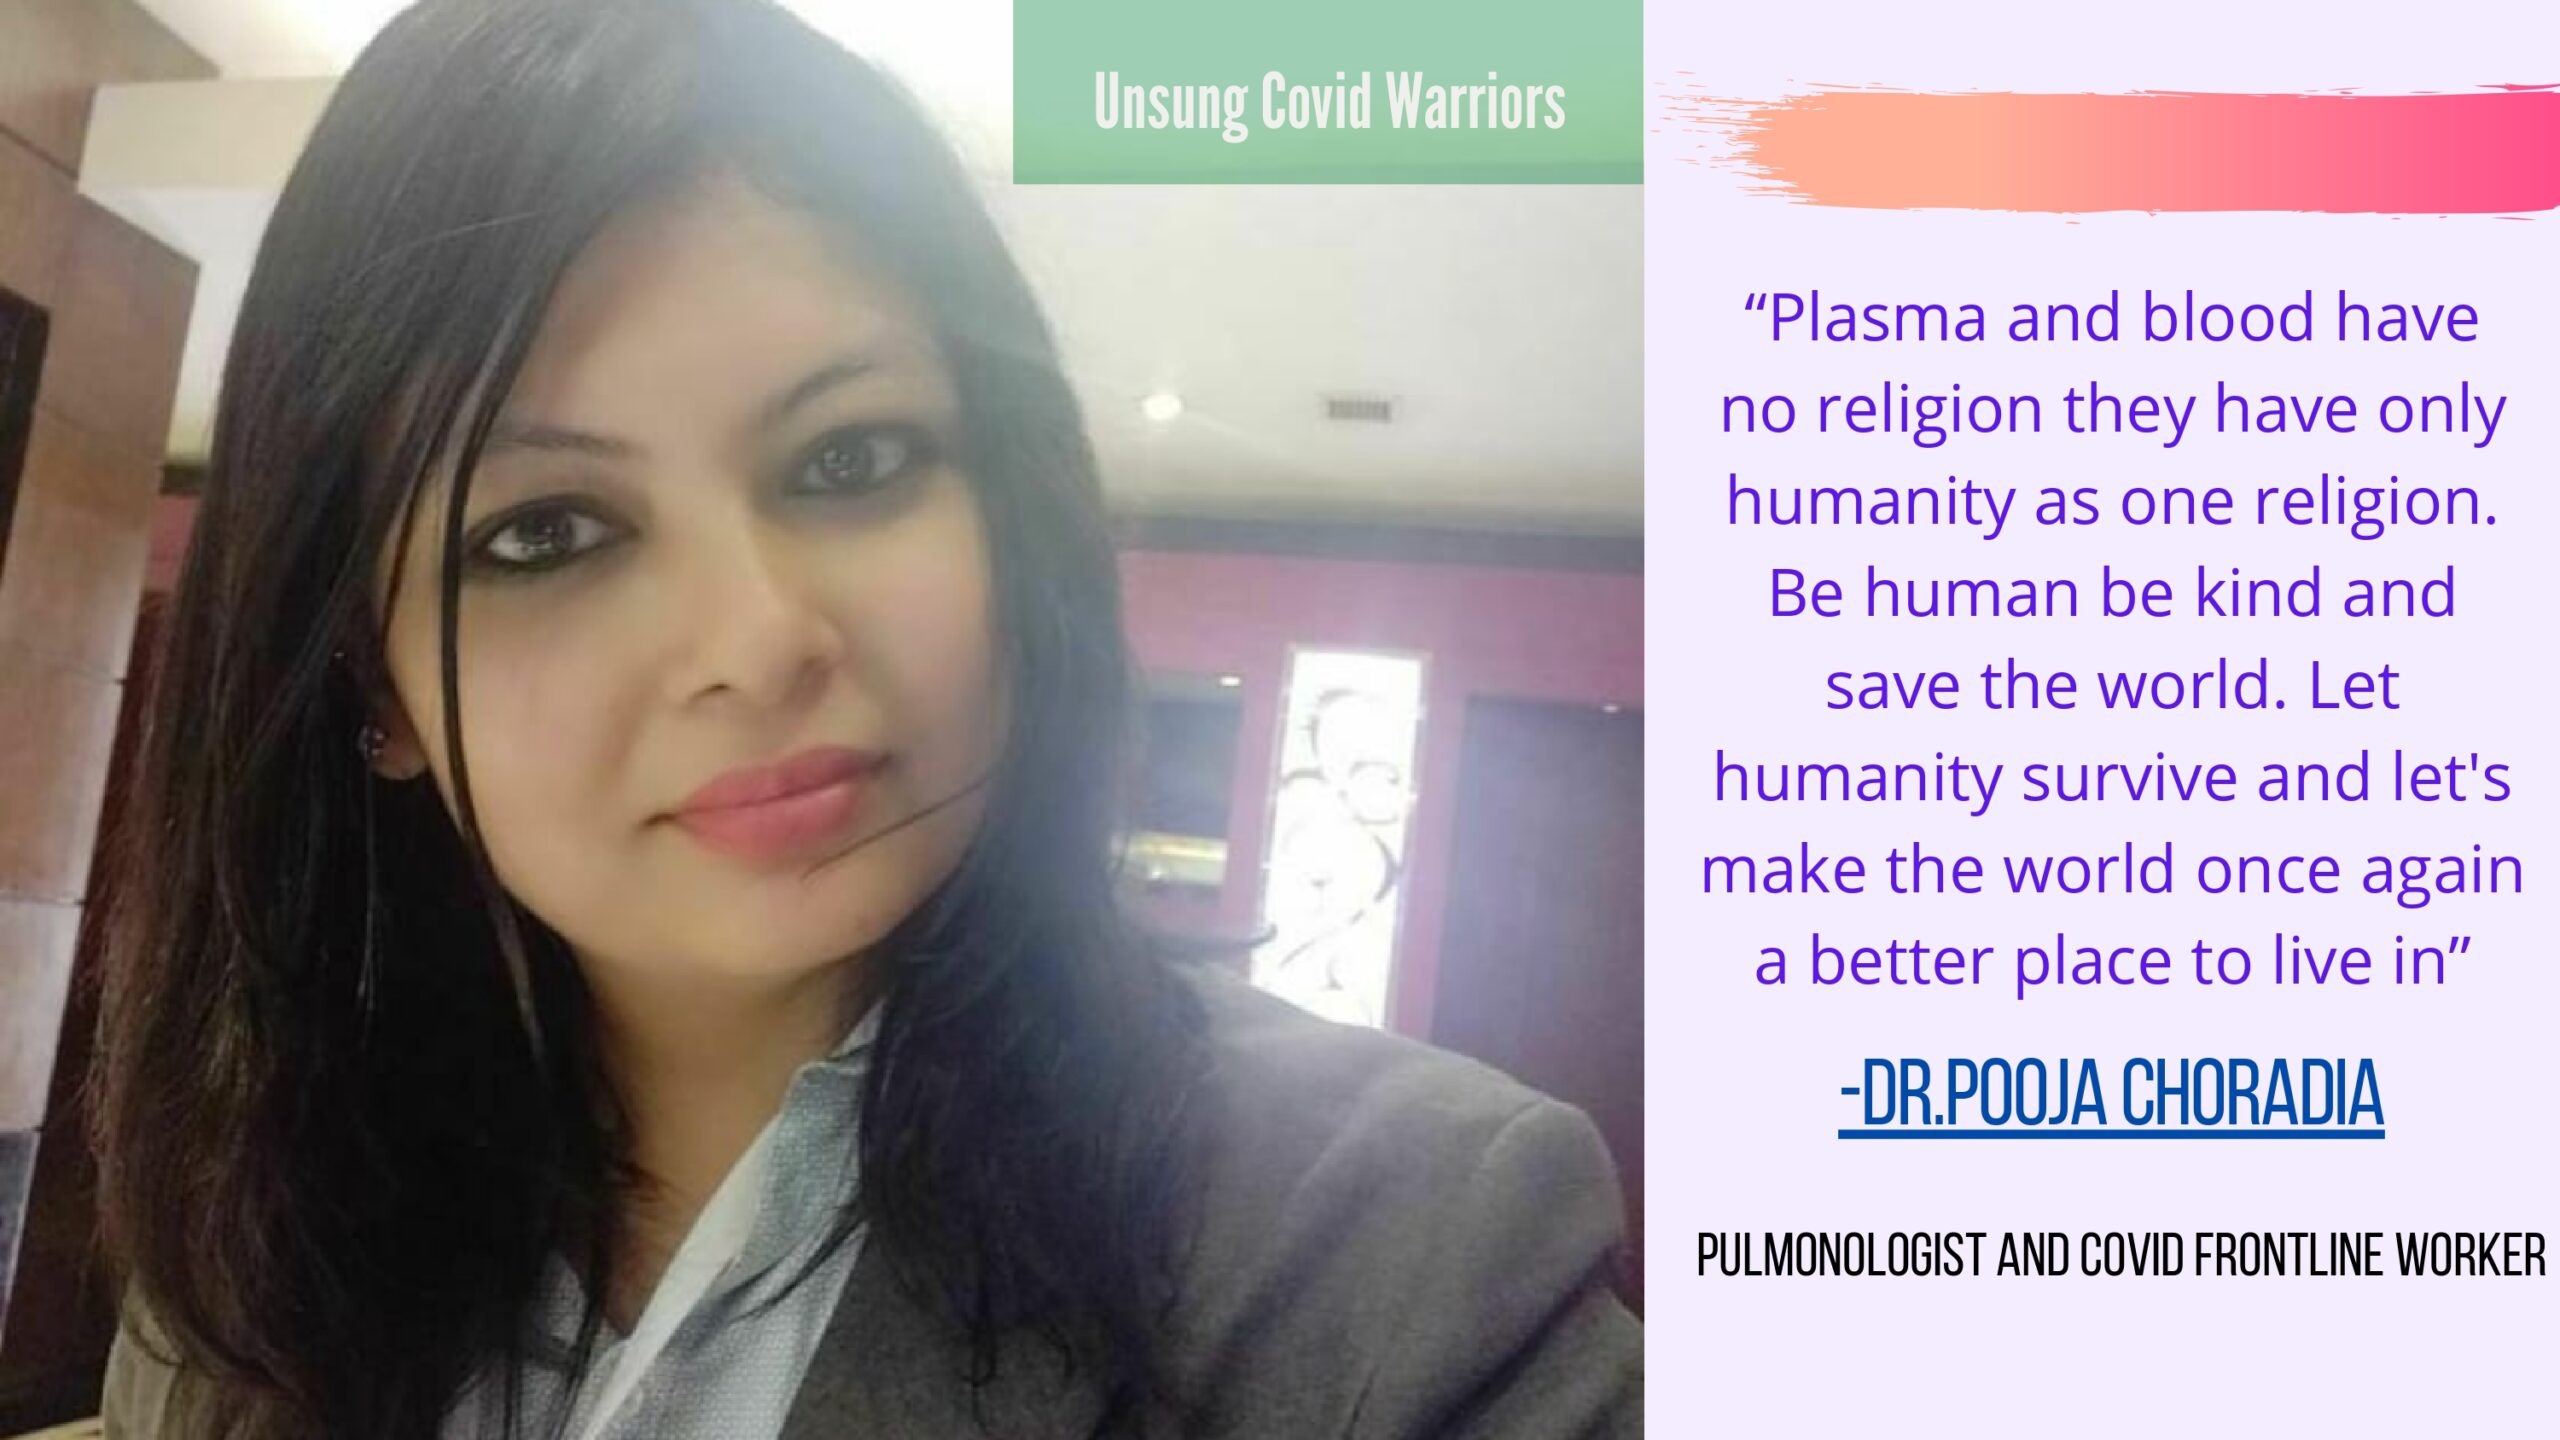 People like Dr.Pooja Choradia makes us believe in humanity as well as kindness. In this distressed time, one can surely reach out to Dr.Pooja through her twitter handle @LunghealthDoc and can get the help one needs because after all, Dr P's name is enough just as her twitter name says. We thank you Dr.P !